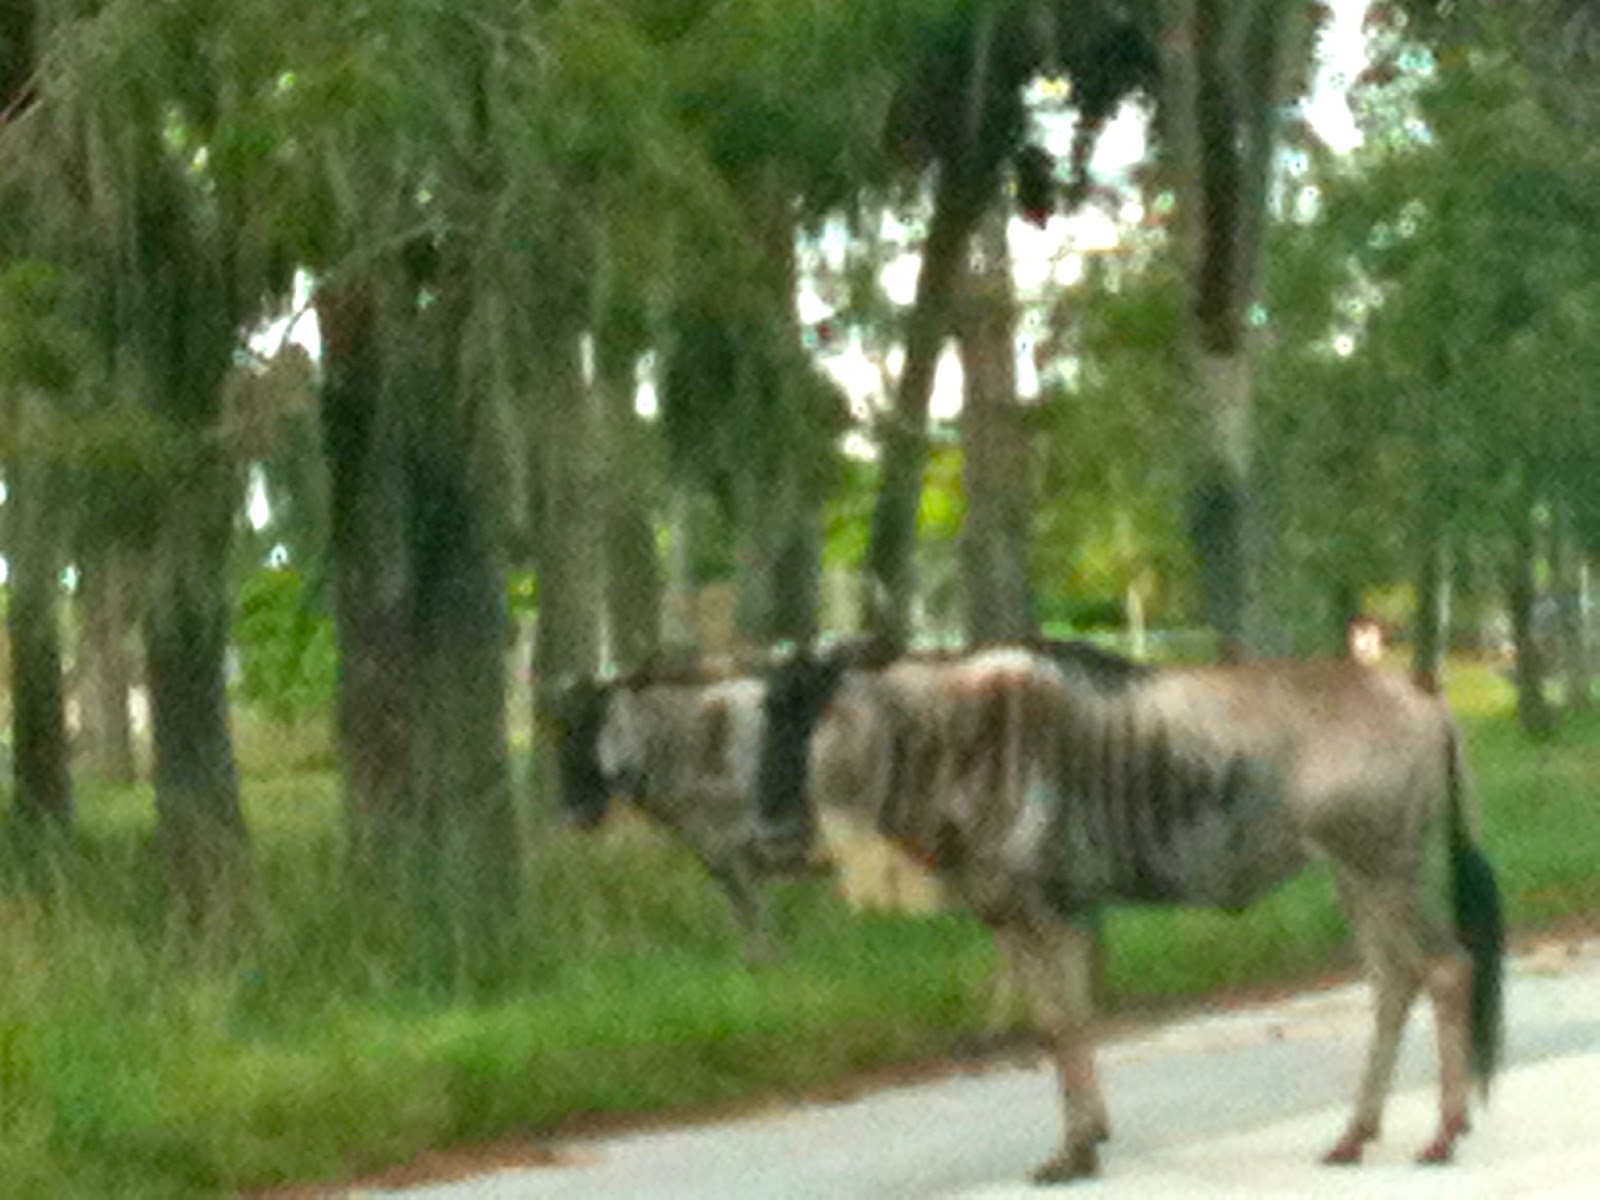 Lion Country Safari, Loxahatchee, FL - ouroutdoortravels.blogspot.com